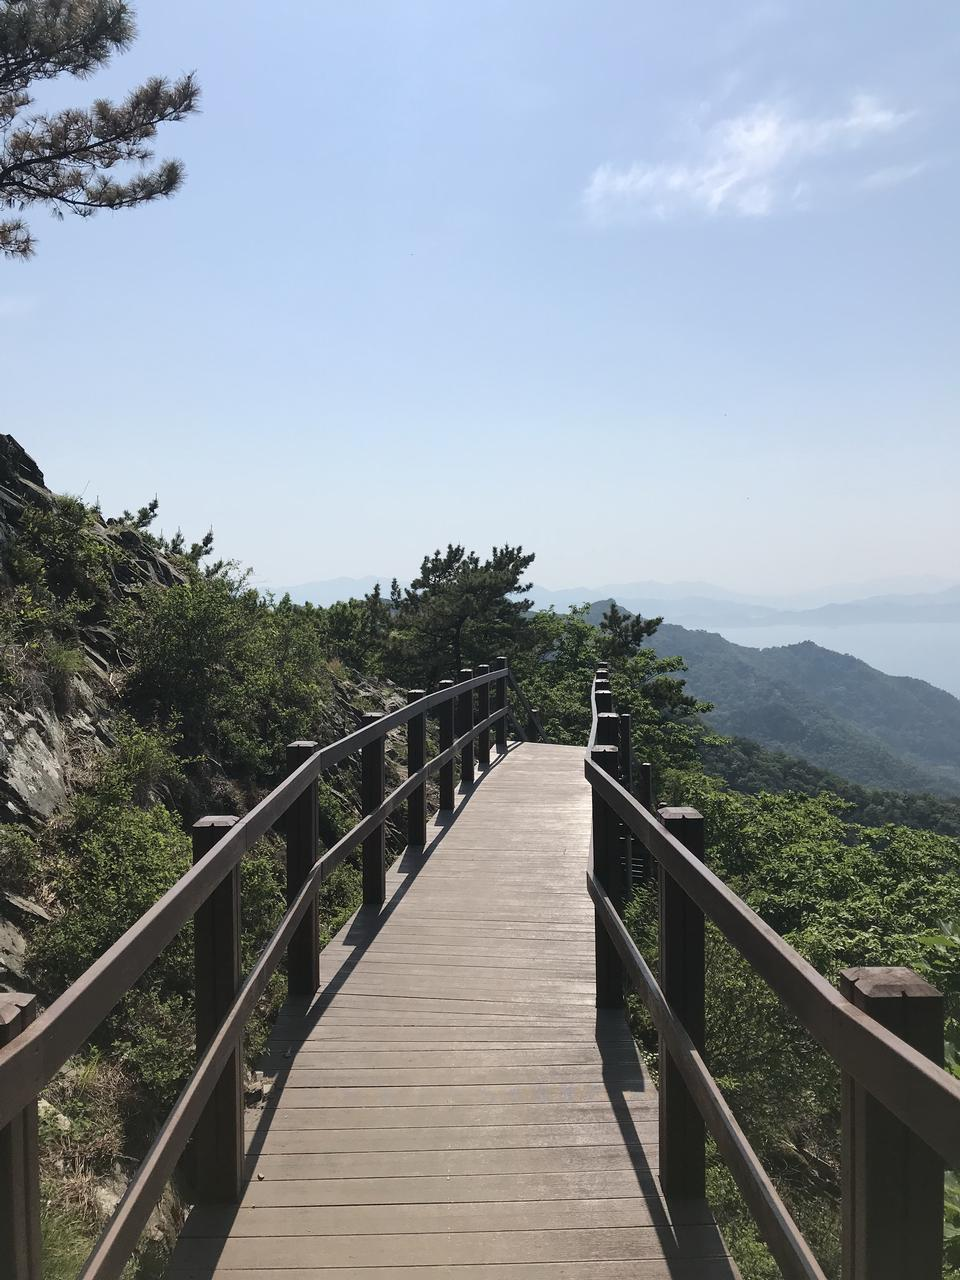 Wooden Bridge Saryangdo Tongyeong Island South Korea